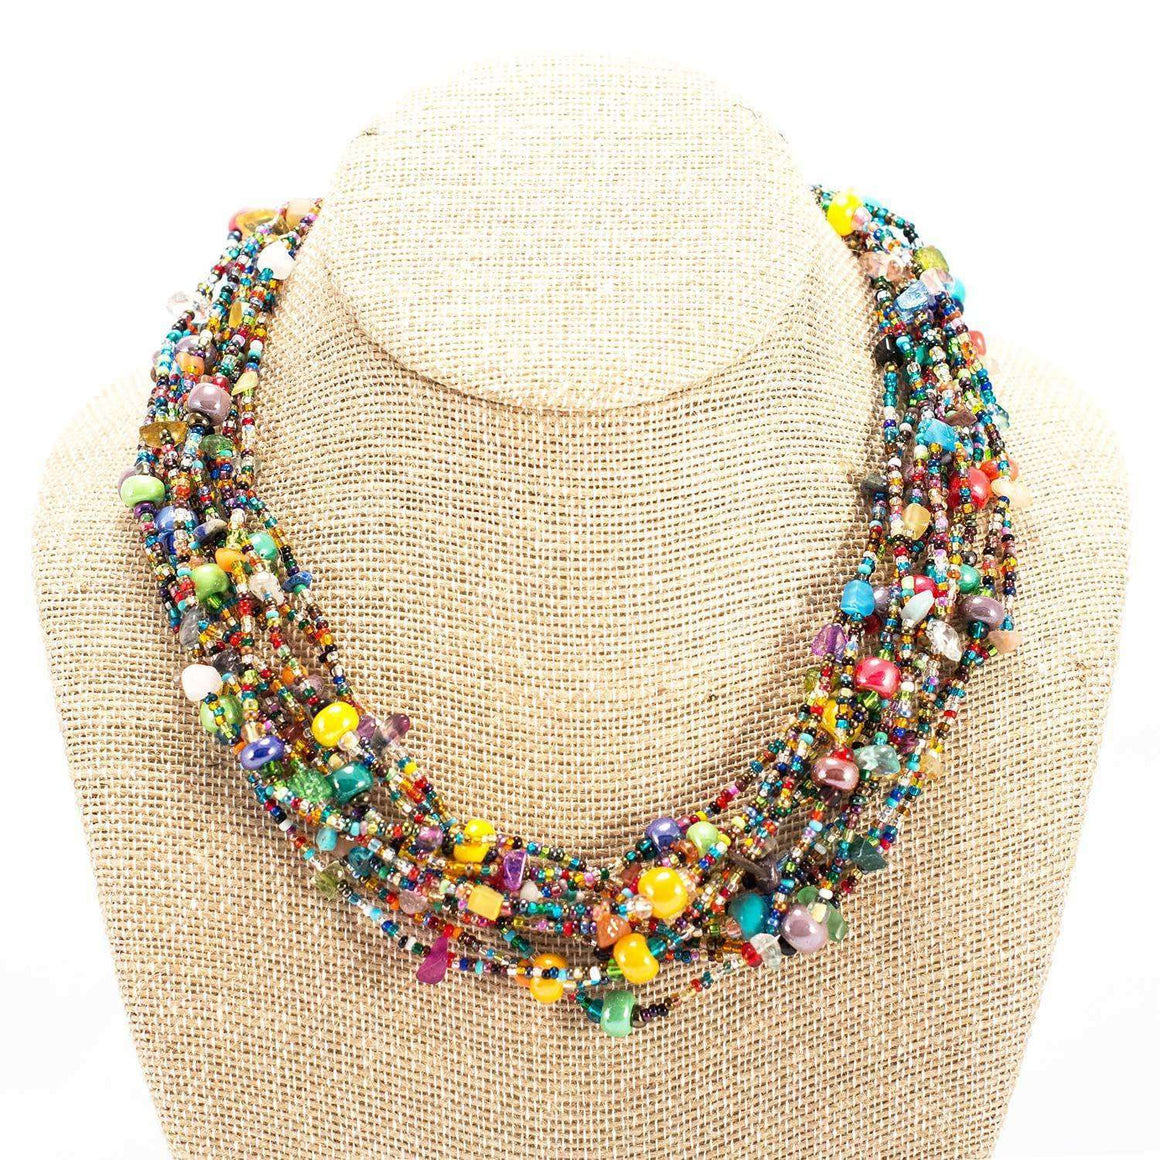 12 Strand Bead Beach Ball Necklace CoolHatcher at TheArtOfLiving.Earth